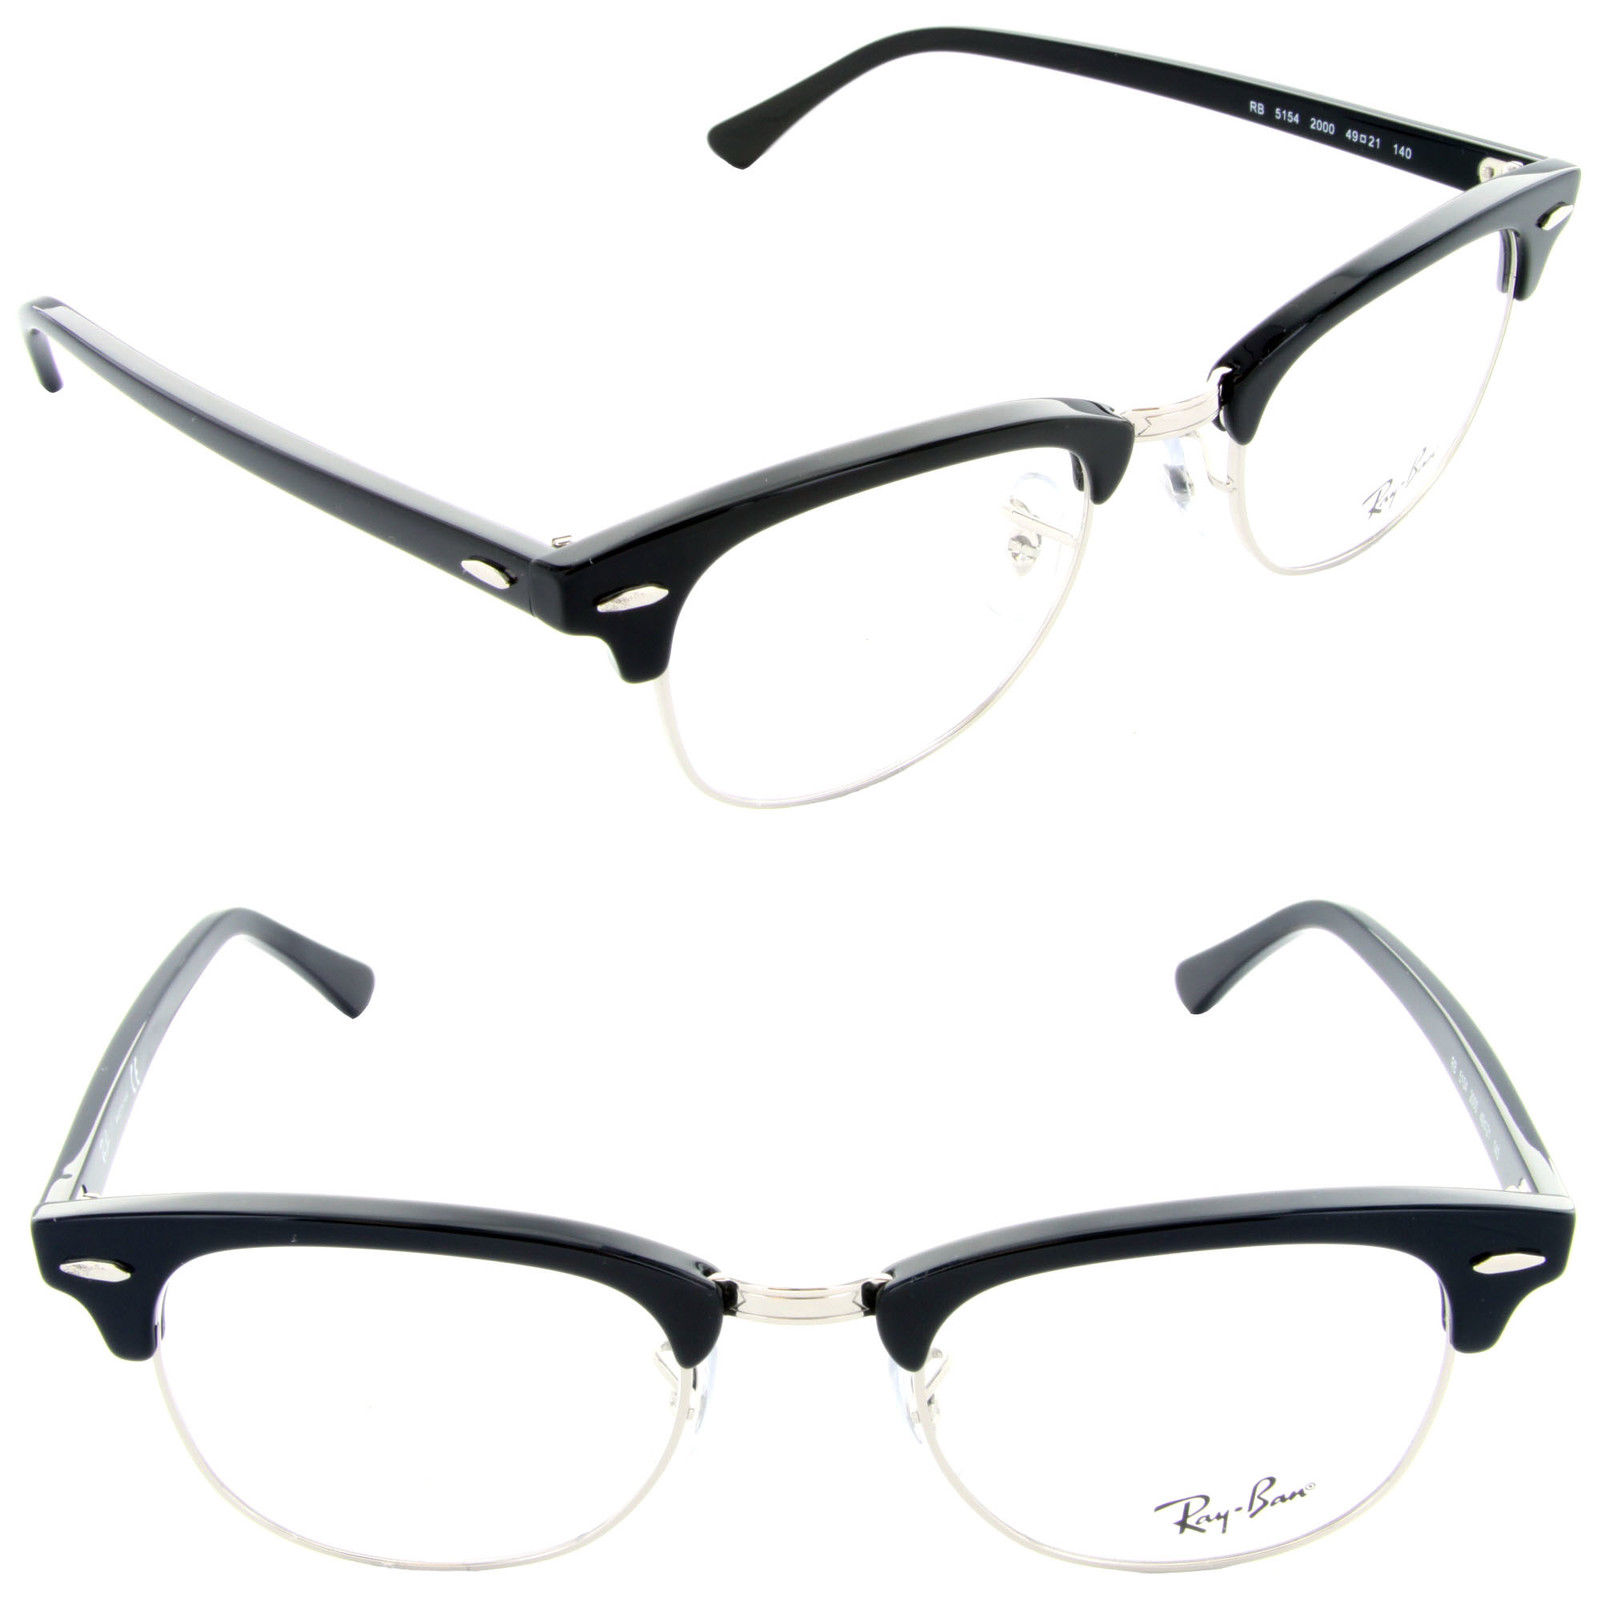 4d51ad2bed6 Ray Ban 5154 Alloy